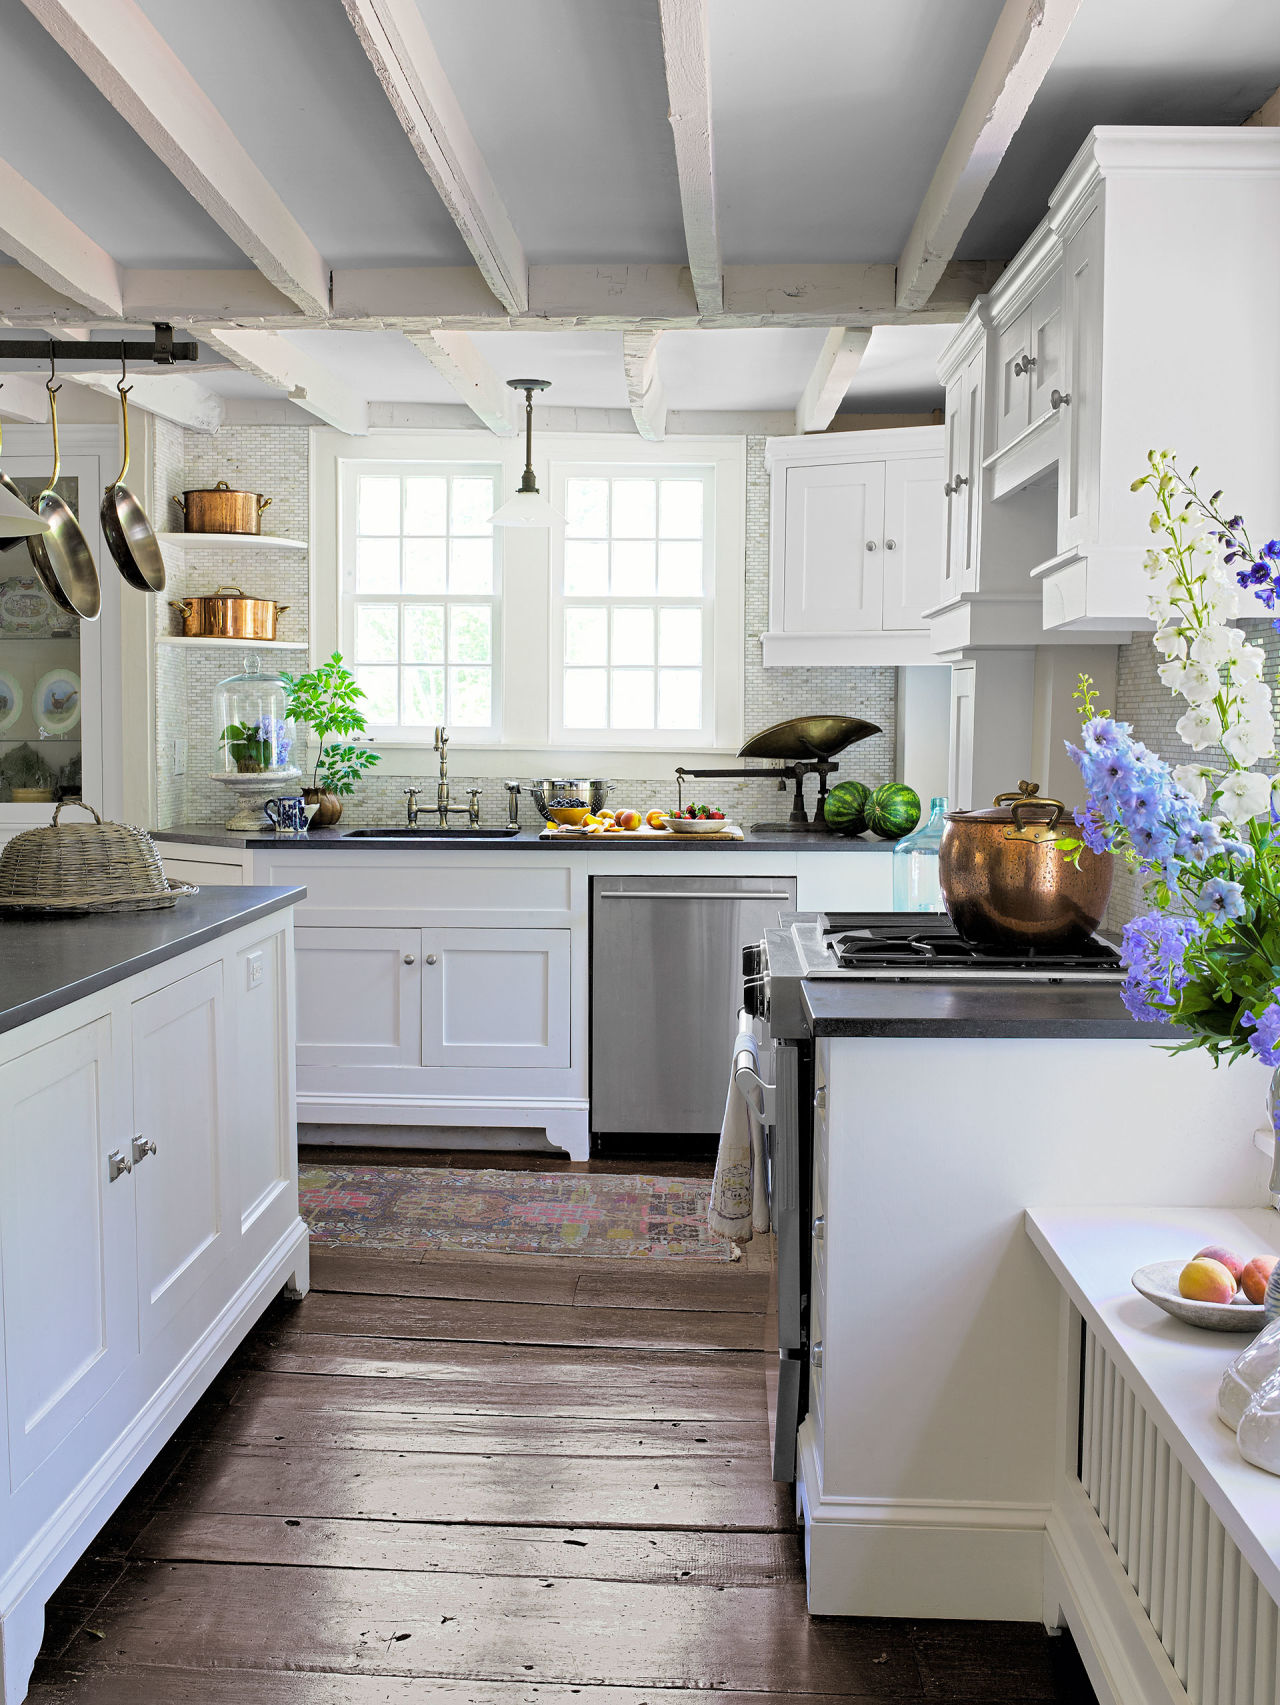 Ellen allen connecticut farmhouse farmhouse decorating ideas for Kitchen remodel